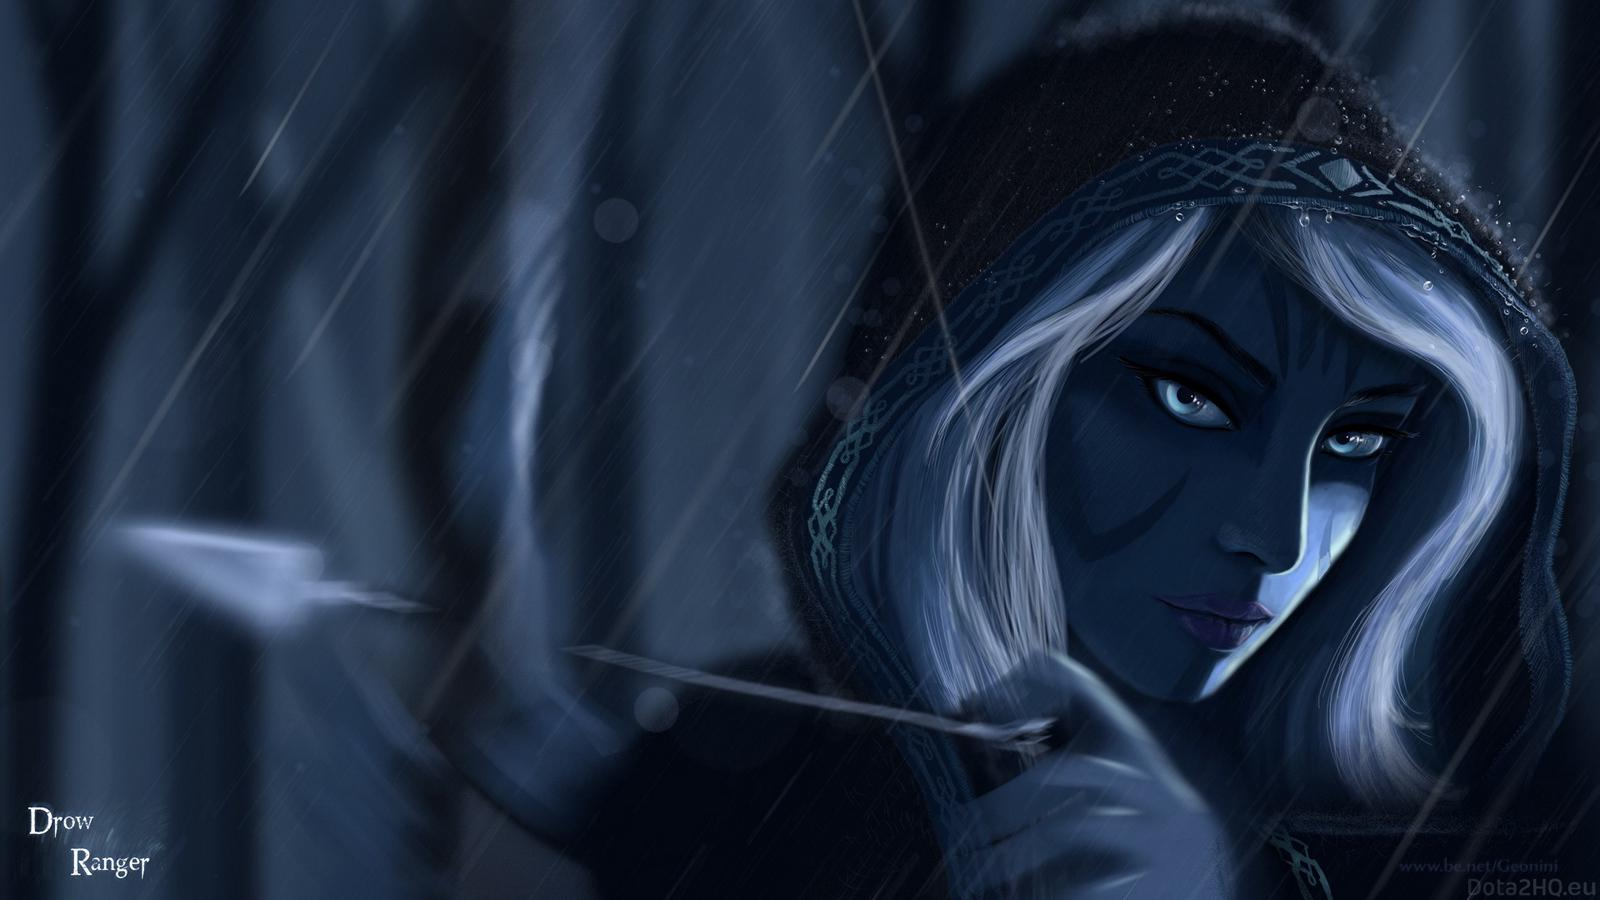 Drow Ranger k Ultra HD Wallpaper Background Image